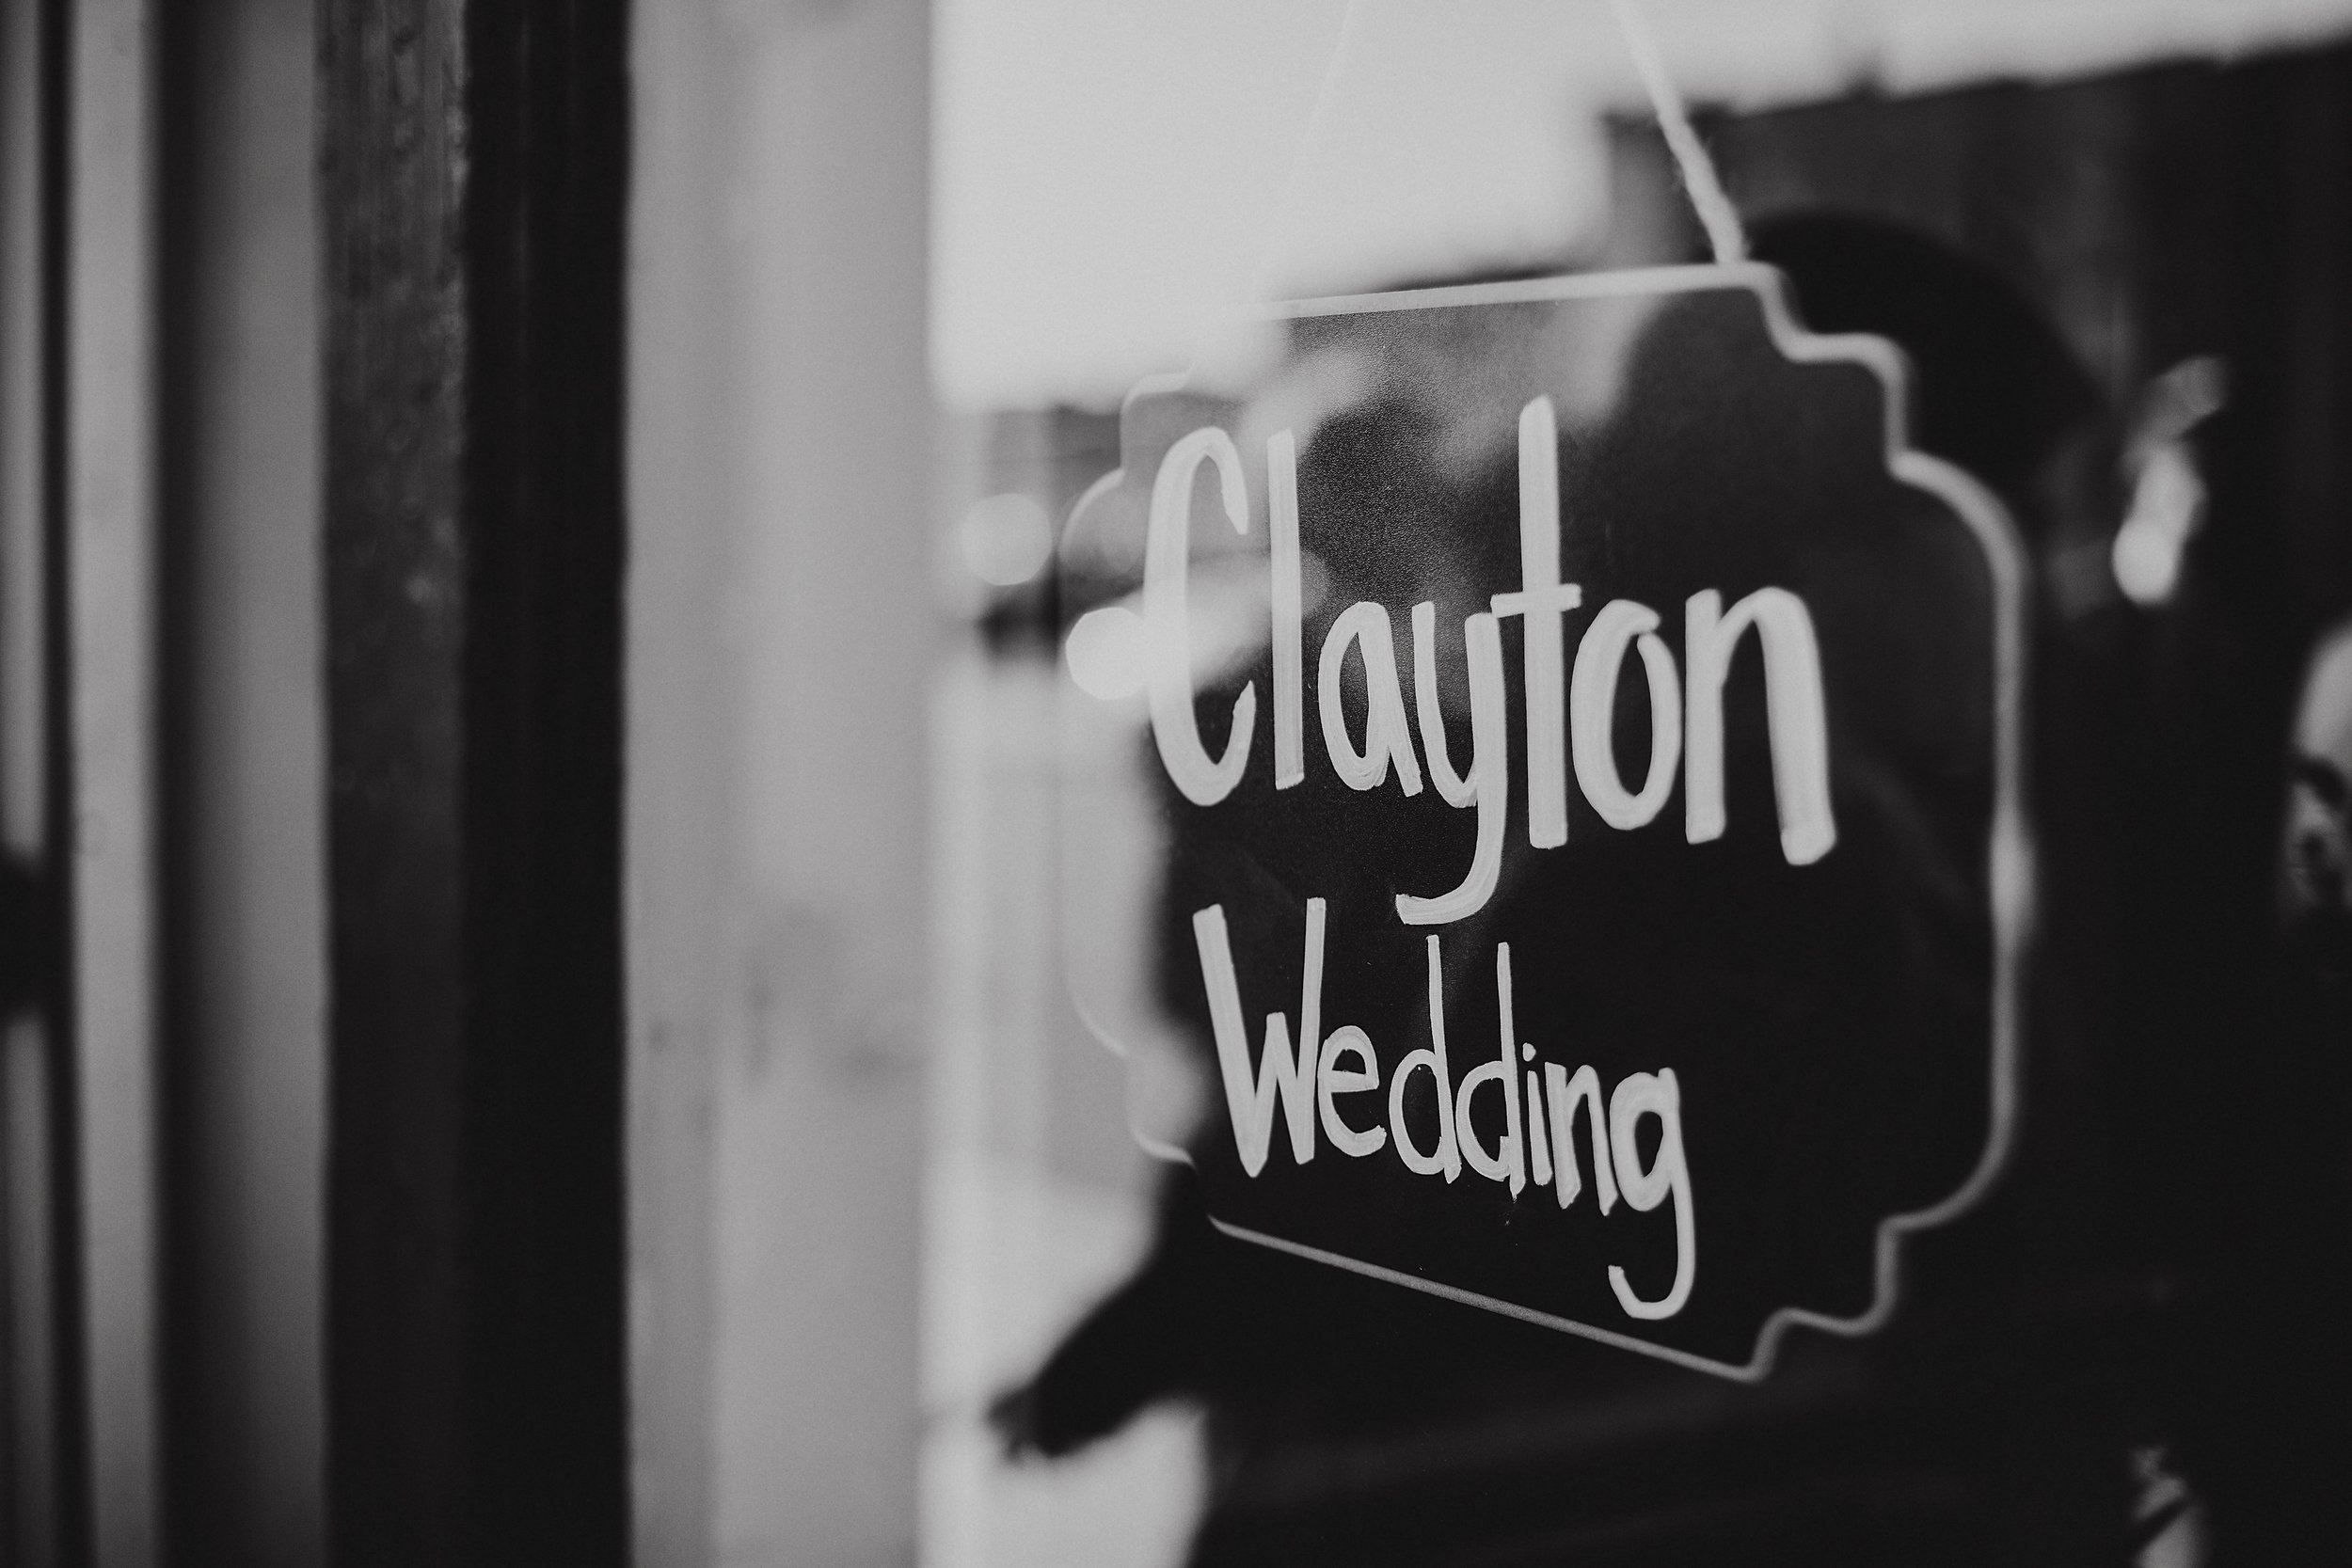 Chalkboard wedding sign hanging in window at venue.